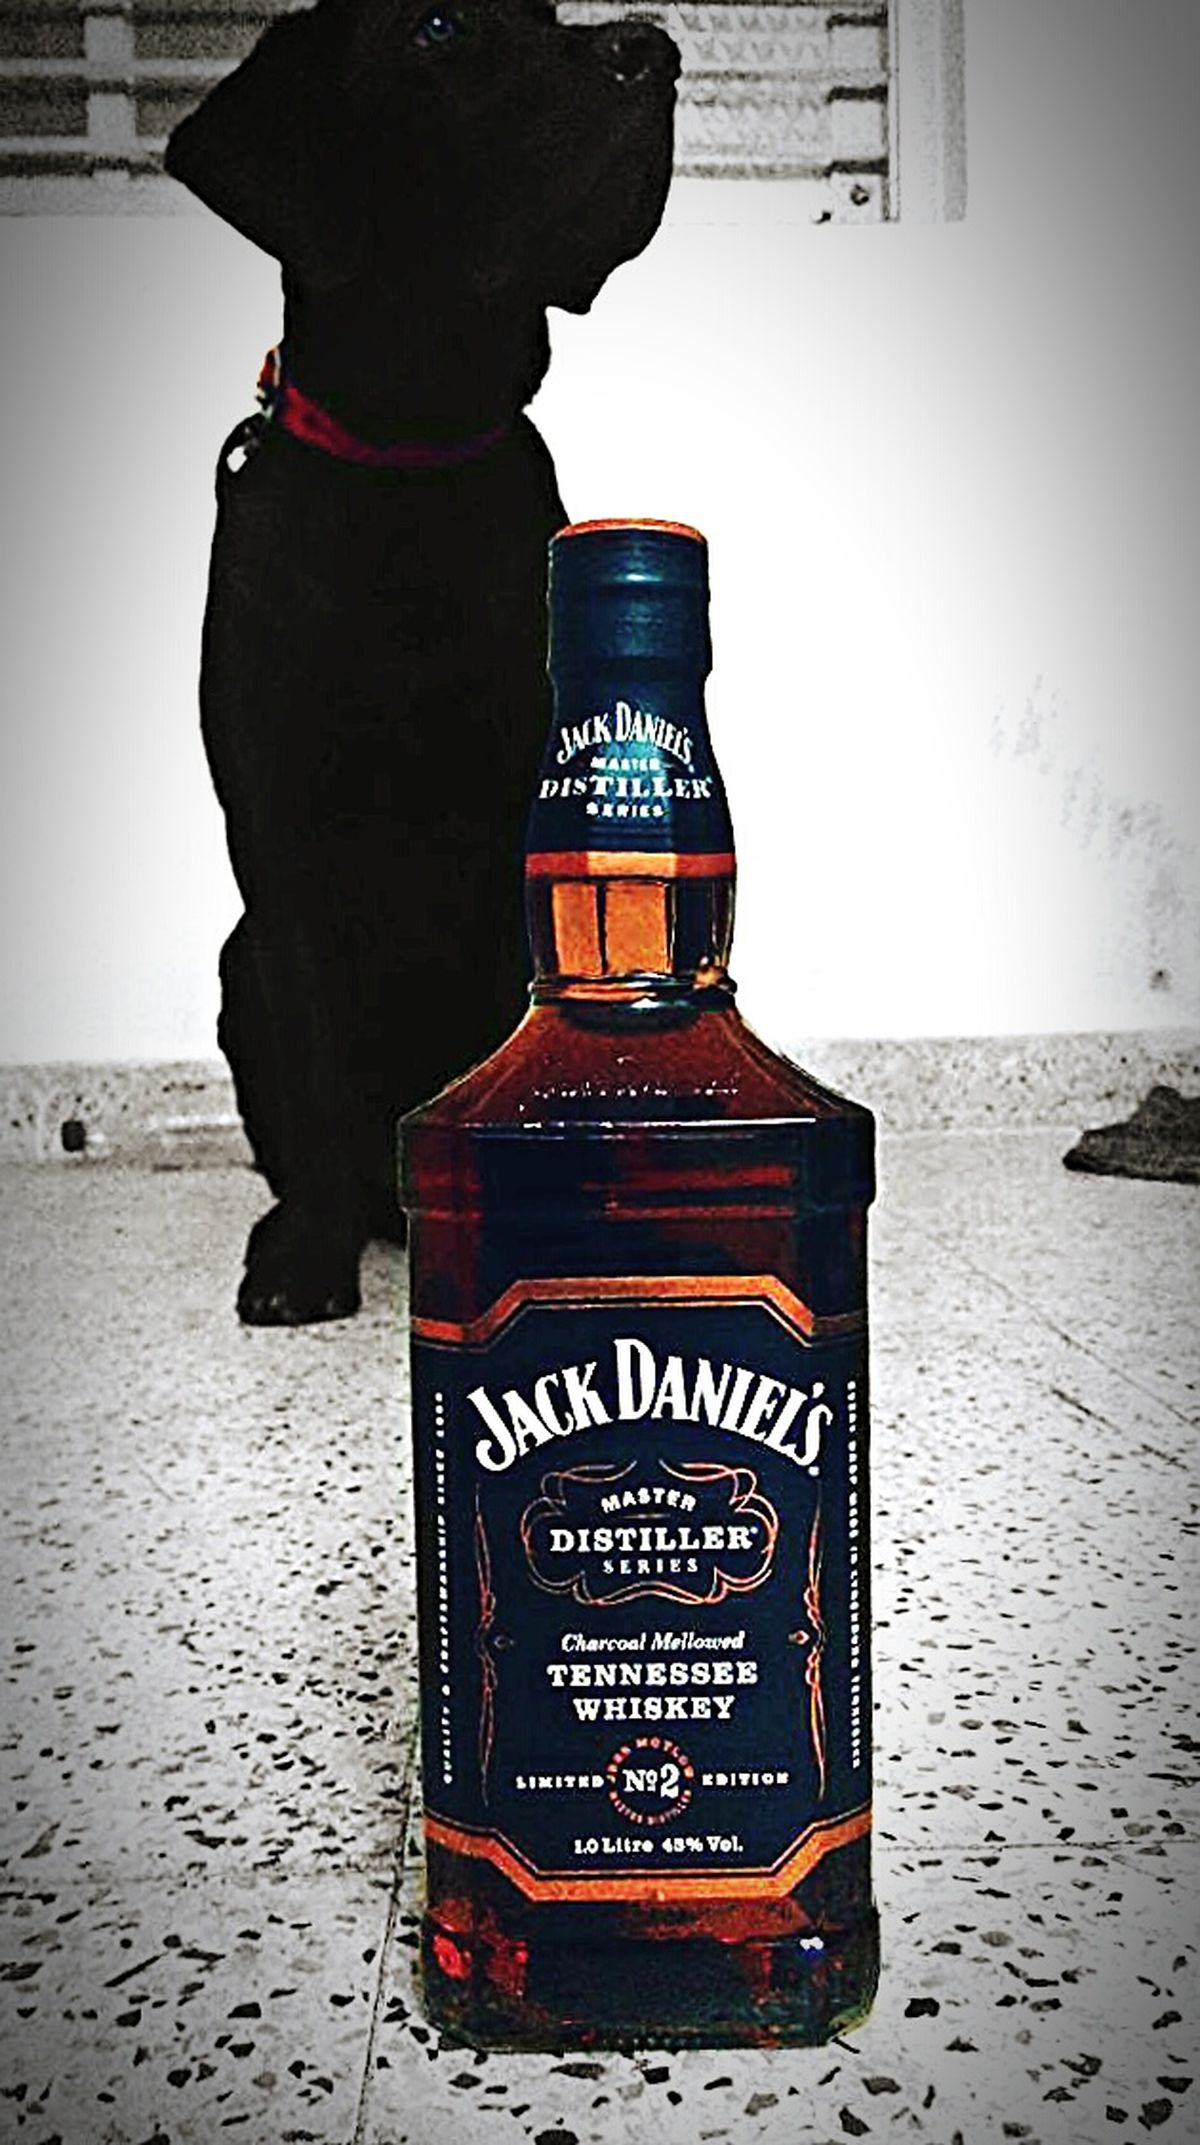 Black Dog on Weekend ♥week with Awesome Music Barbecue and Jackdaniels .